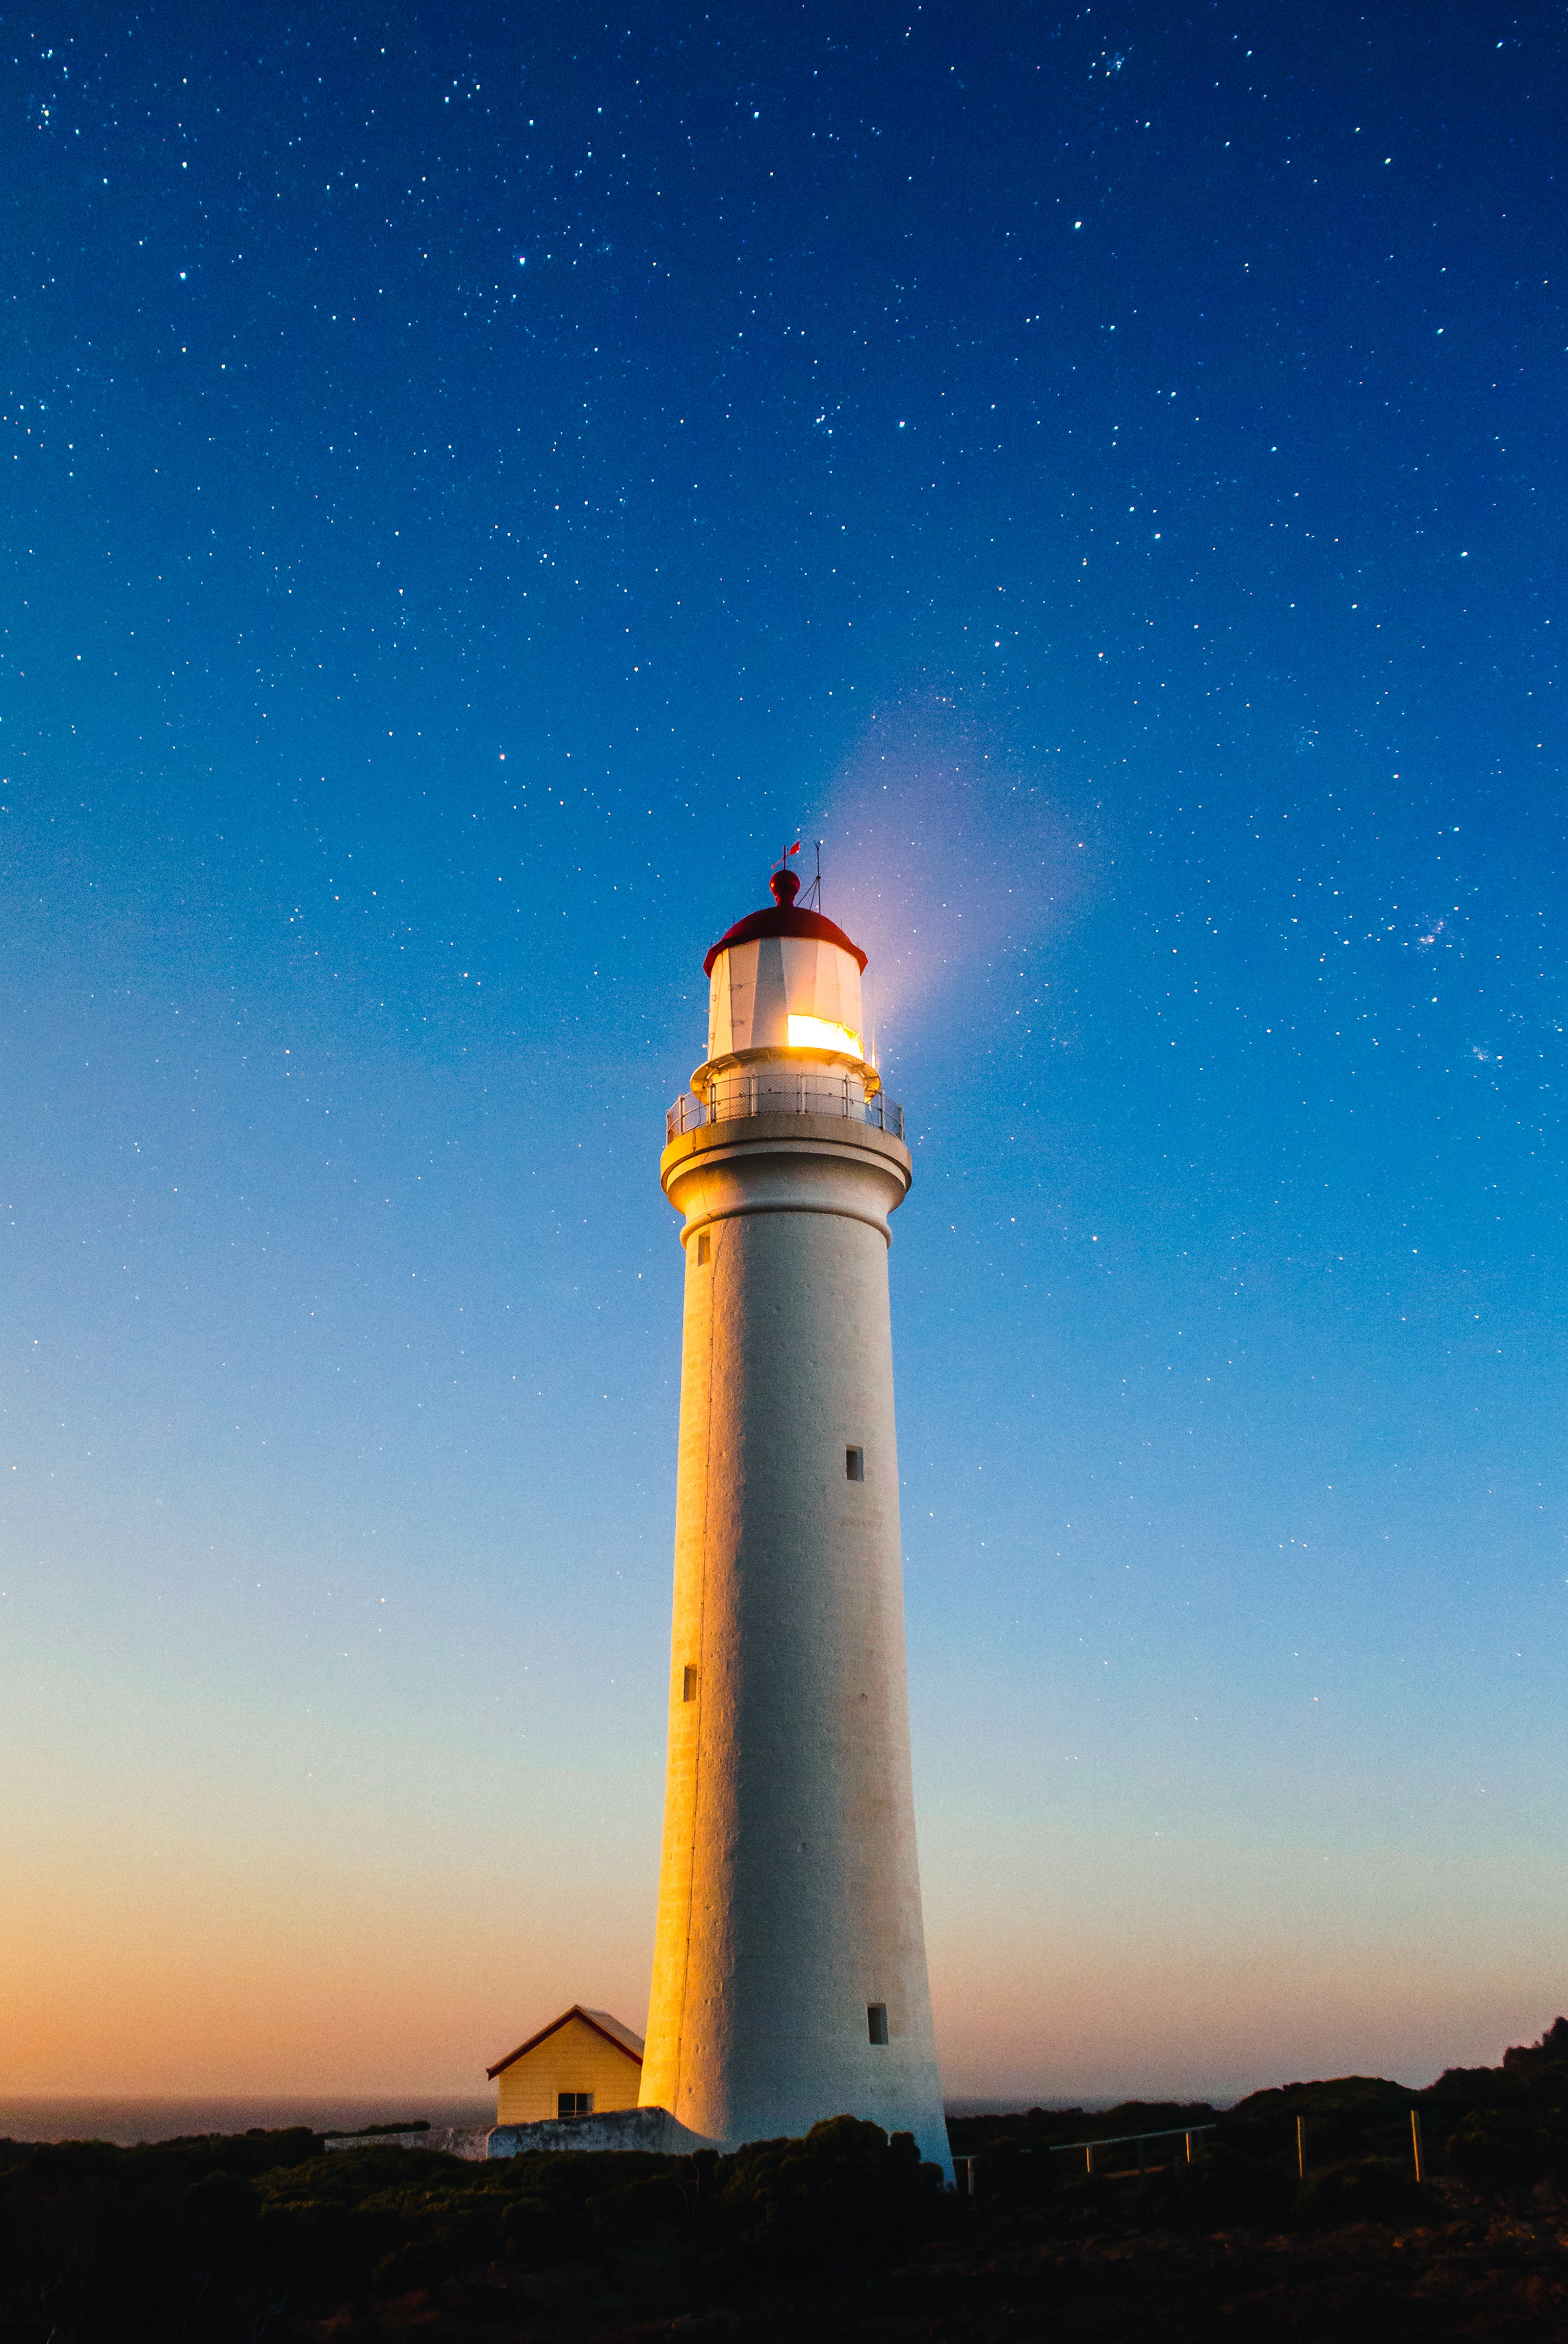 The Light house, Construction, Height, High, Lighthouse, HQ Photo